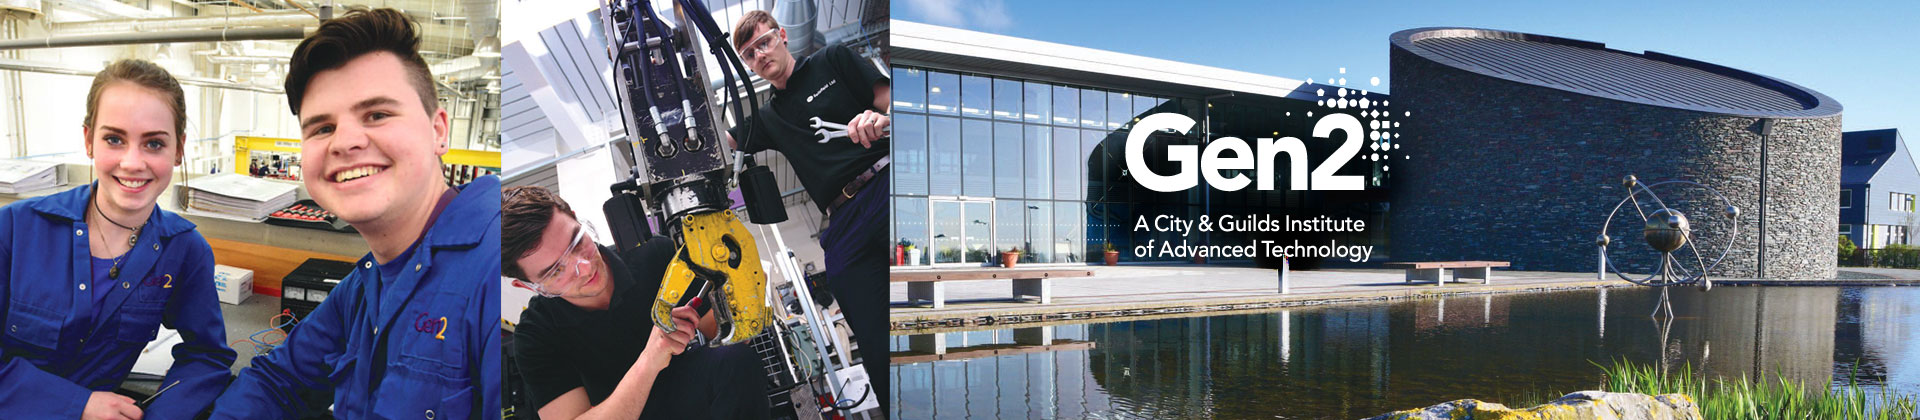 The City & Guilds Group acquires specialist training provider Gen2